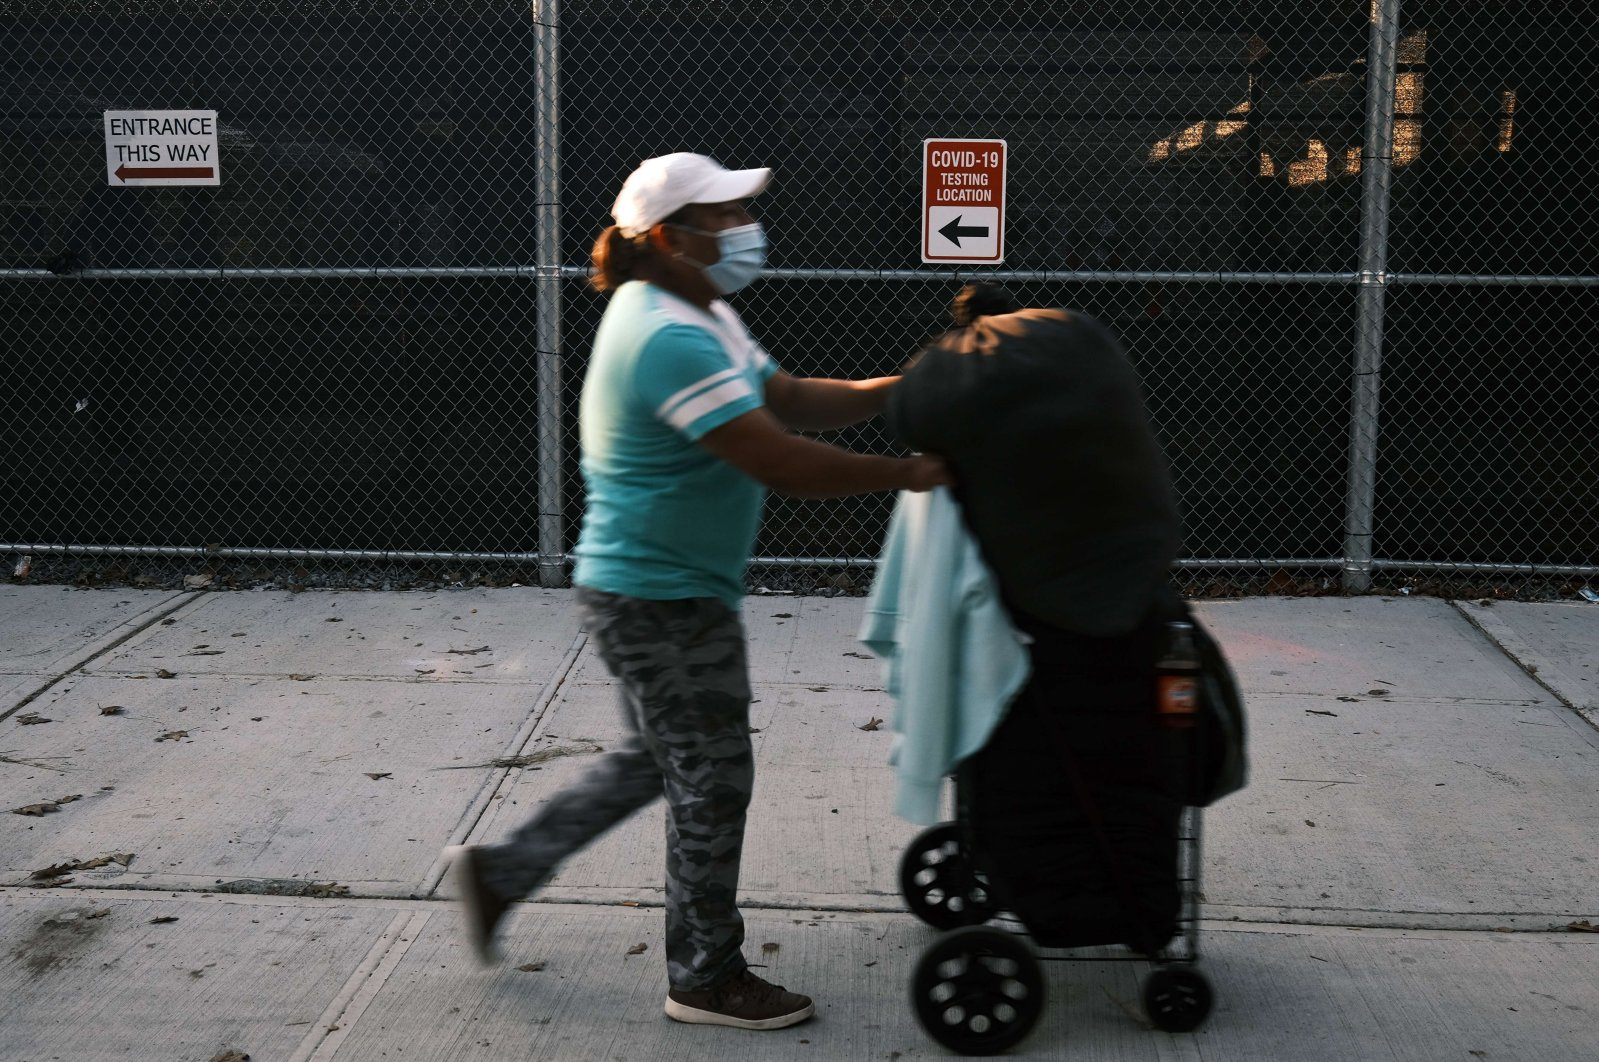 Residents walk by a COVID-19 testing site in the Brooklyn neighborhood of Borough Park on October 06, 2020 in New York City. (Getty Images/AFP Photo)